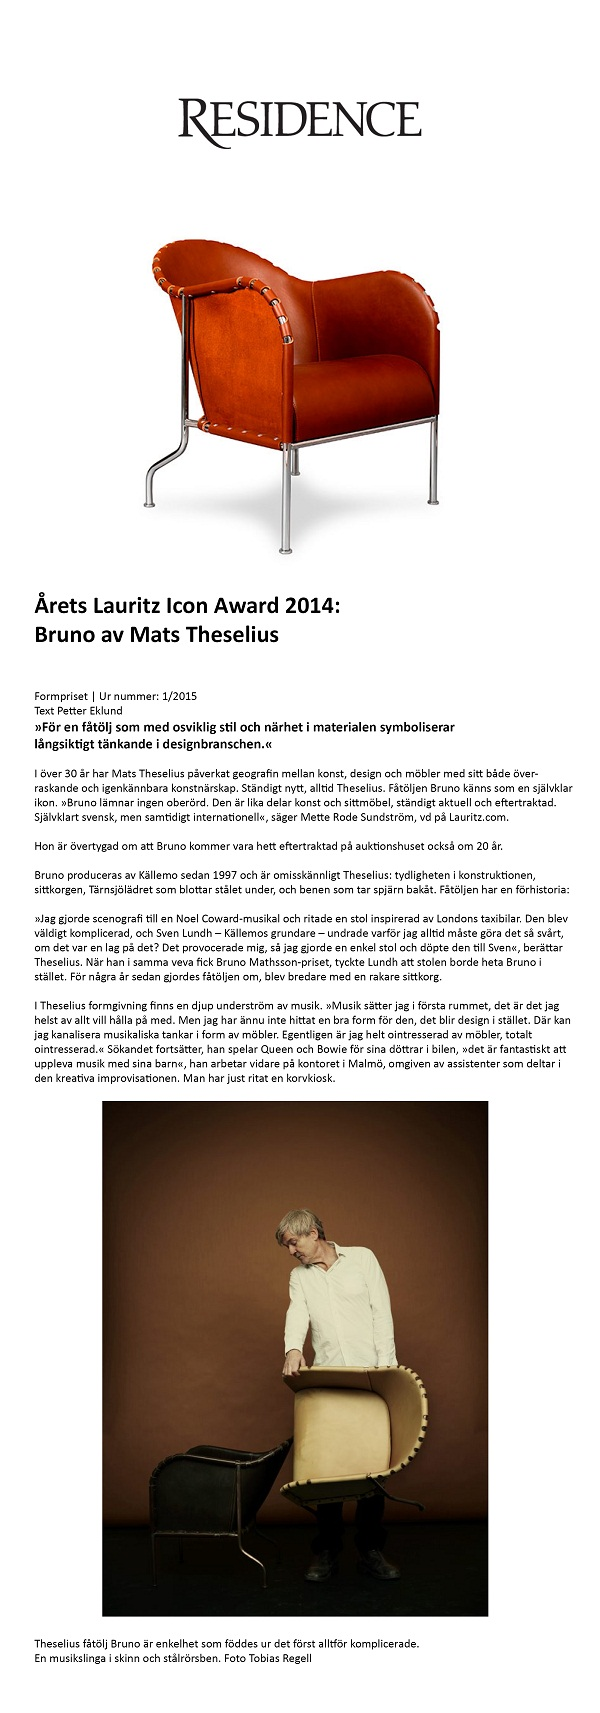 Årets Lauritz Icon Award